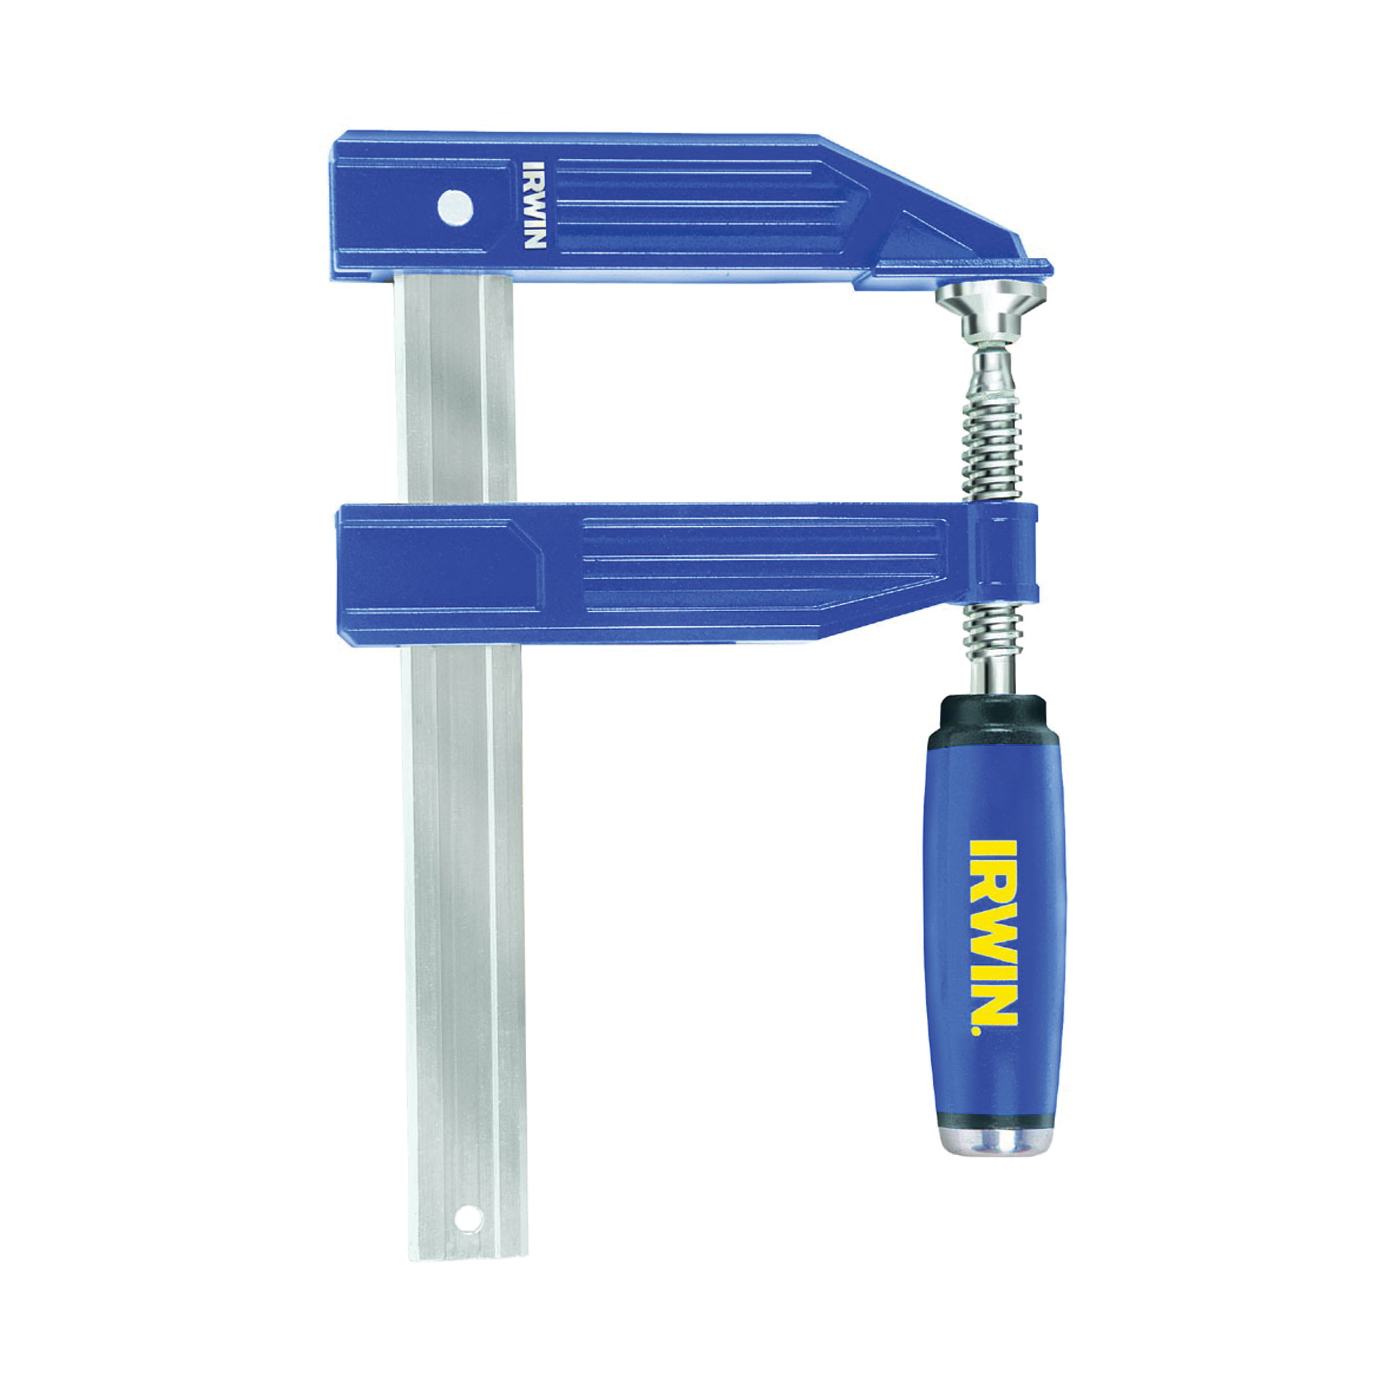 Picture of IRWIN QUICK-GRIP 223230 Heavy-Duty Bar Clamp, 30 in Max Opening Size, 4-7/8 in D Throat